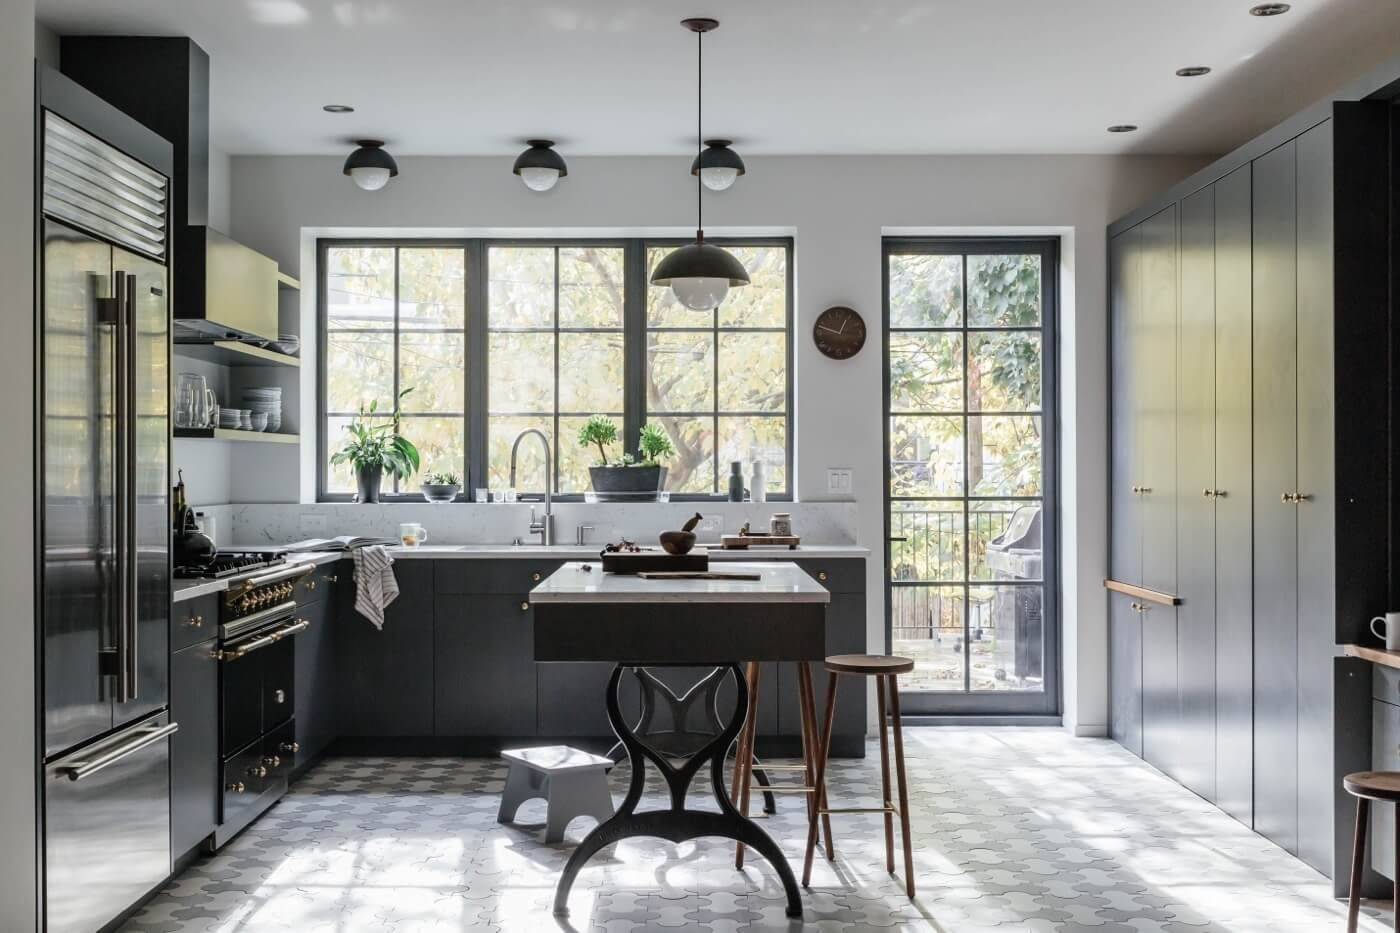 Pinkimberly Ong On New Kitchen  Pinterest  Townhouse New Townhouse Kitchen Design Ideas Review